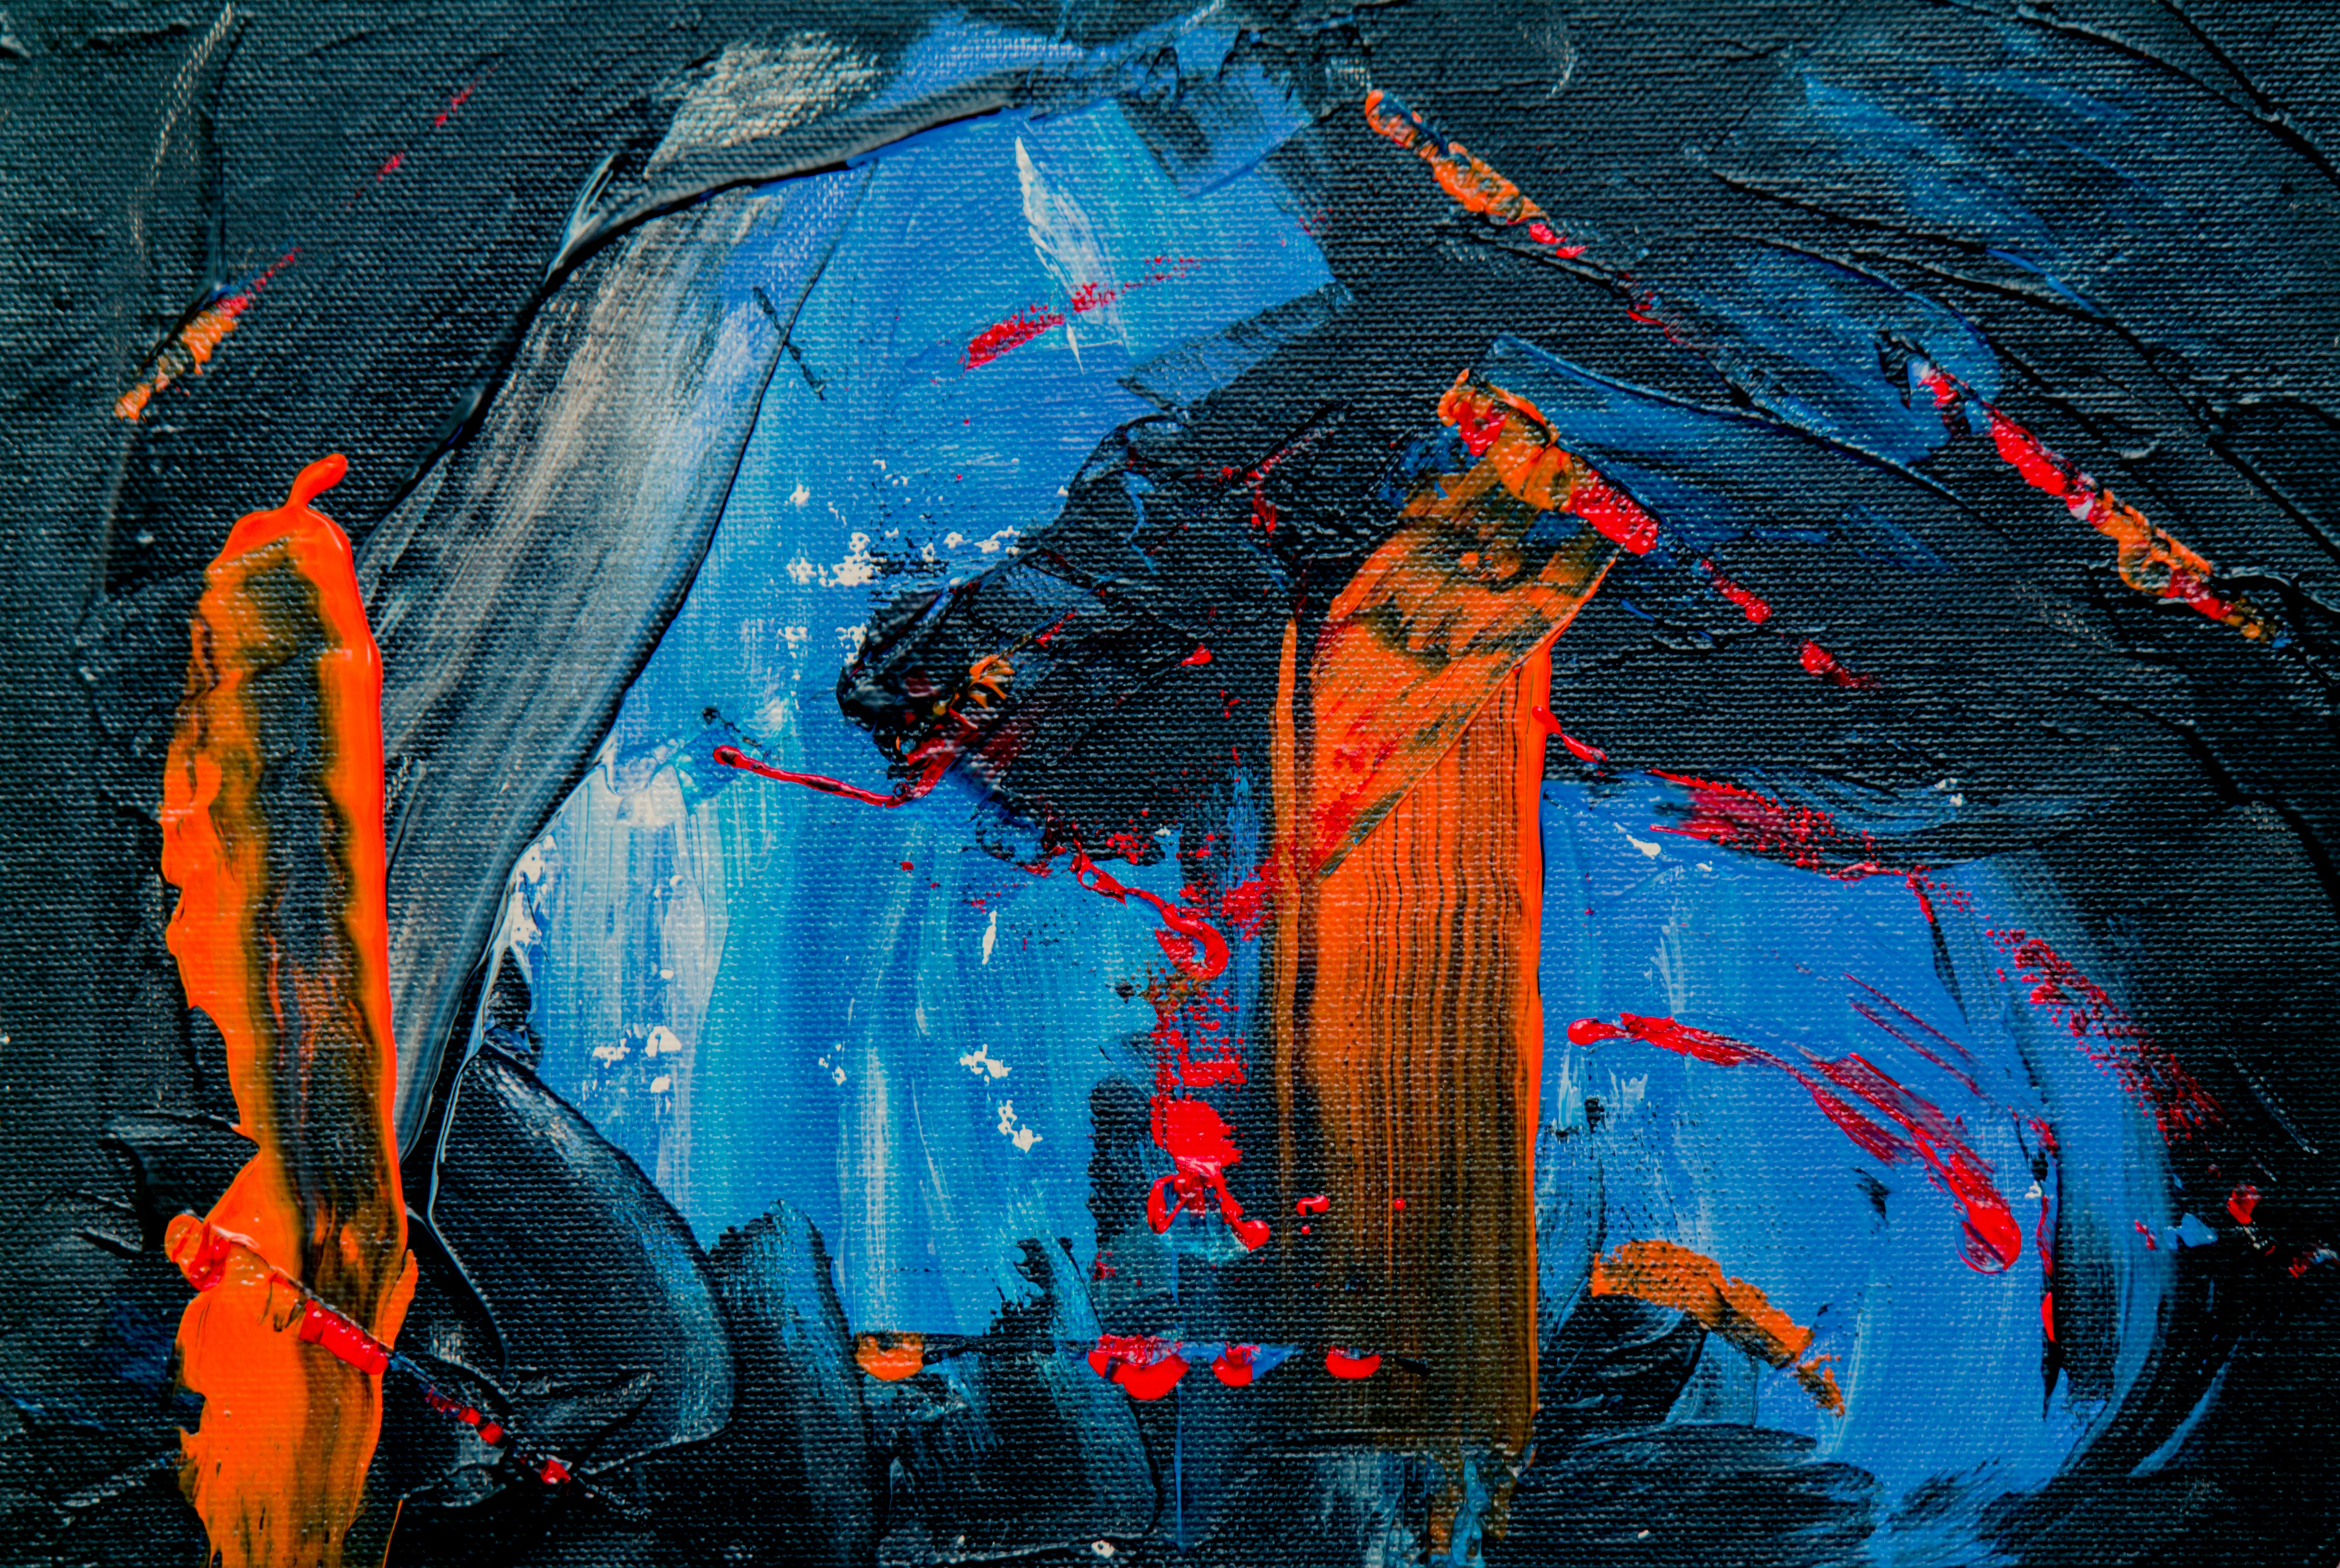 blue, black, and orange abstract painting